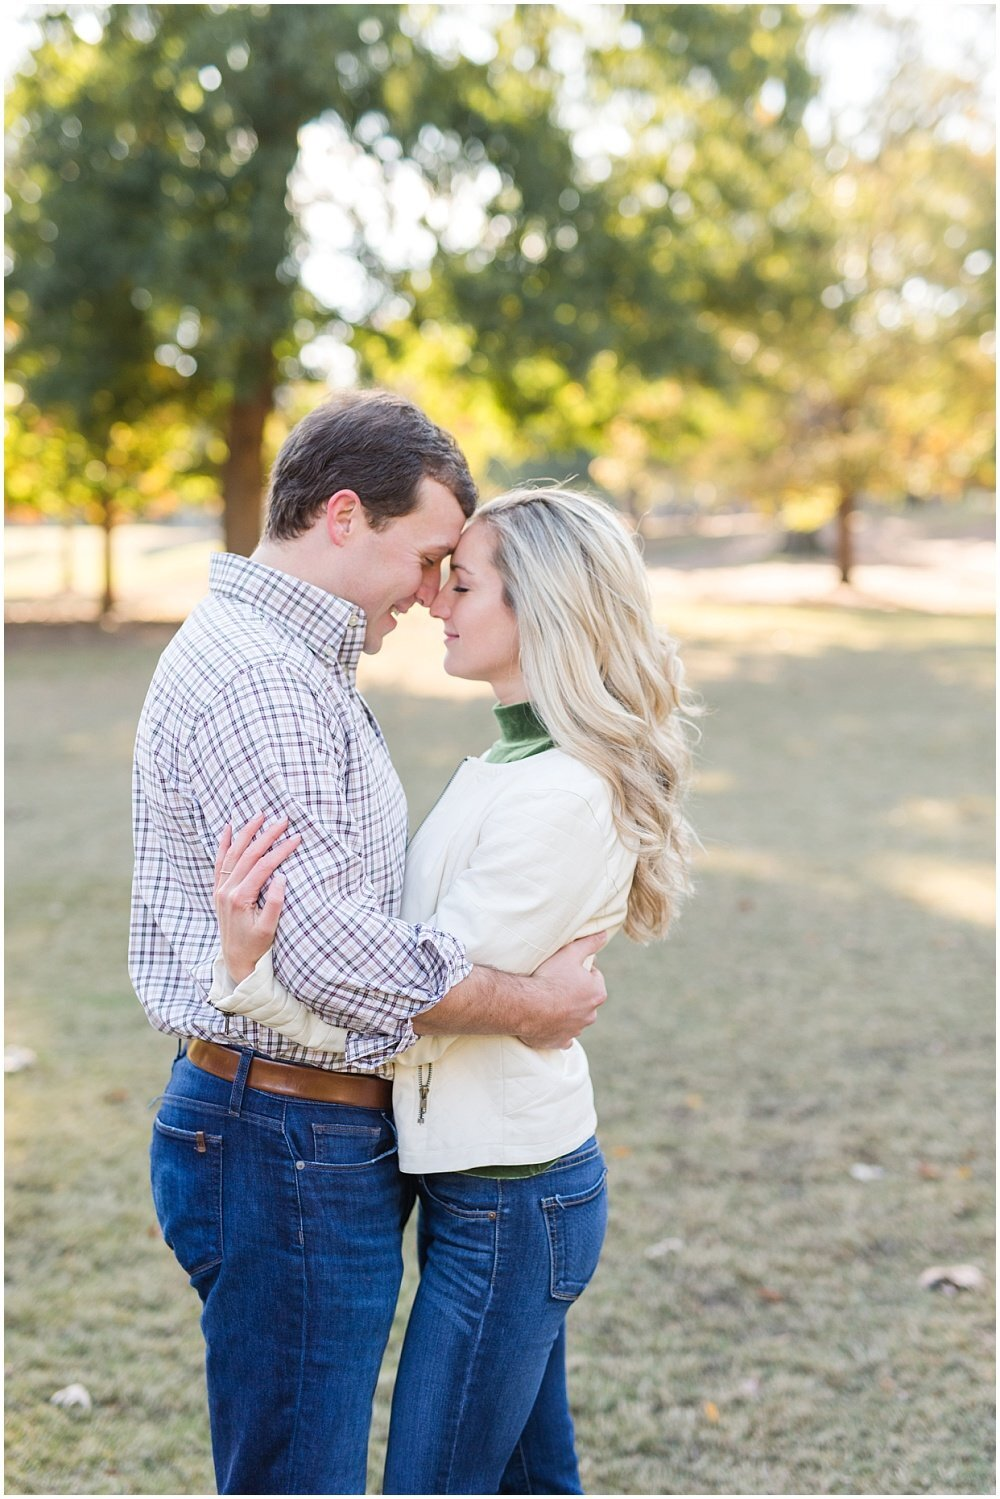 atlanta-georgia-wedding-photographer-piedmont-park-engagement-laura-barnes-photo-andrews-26